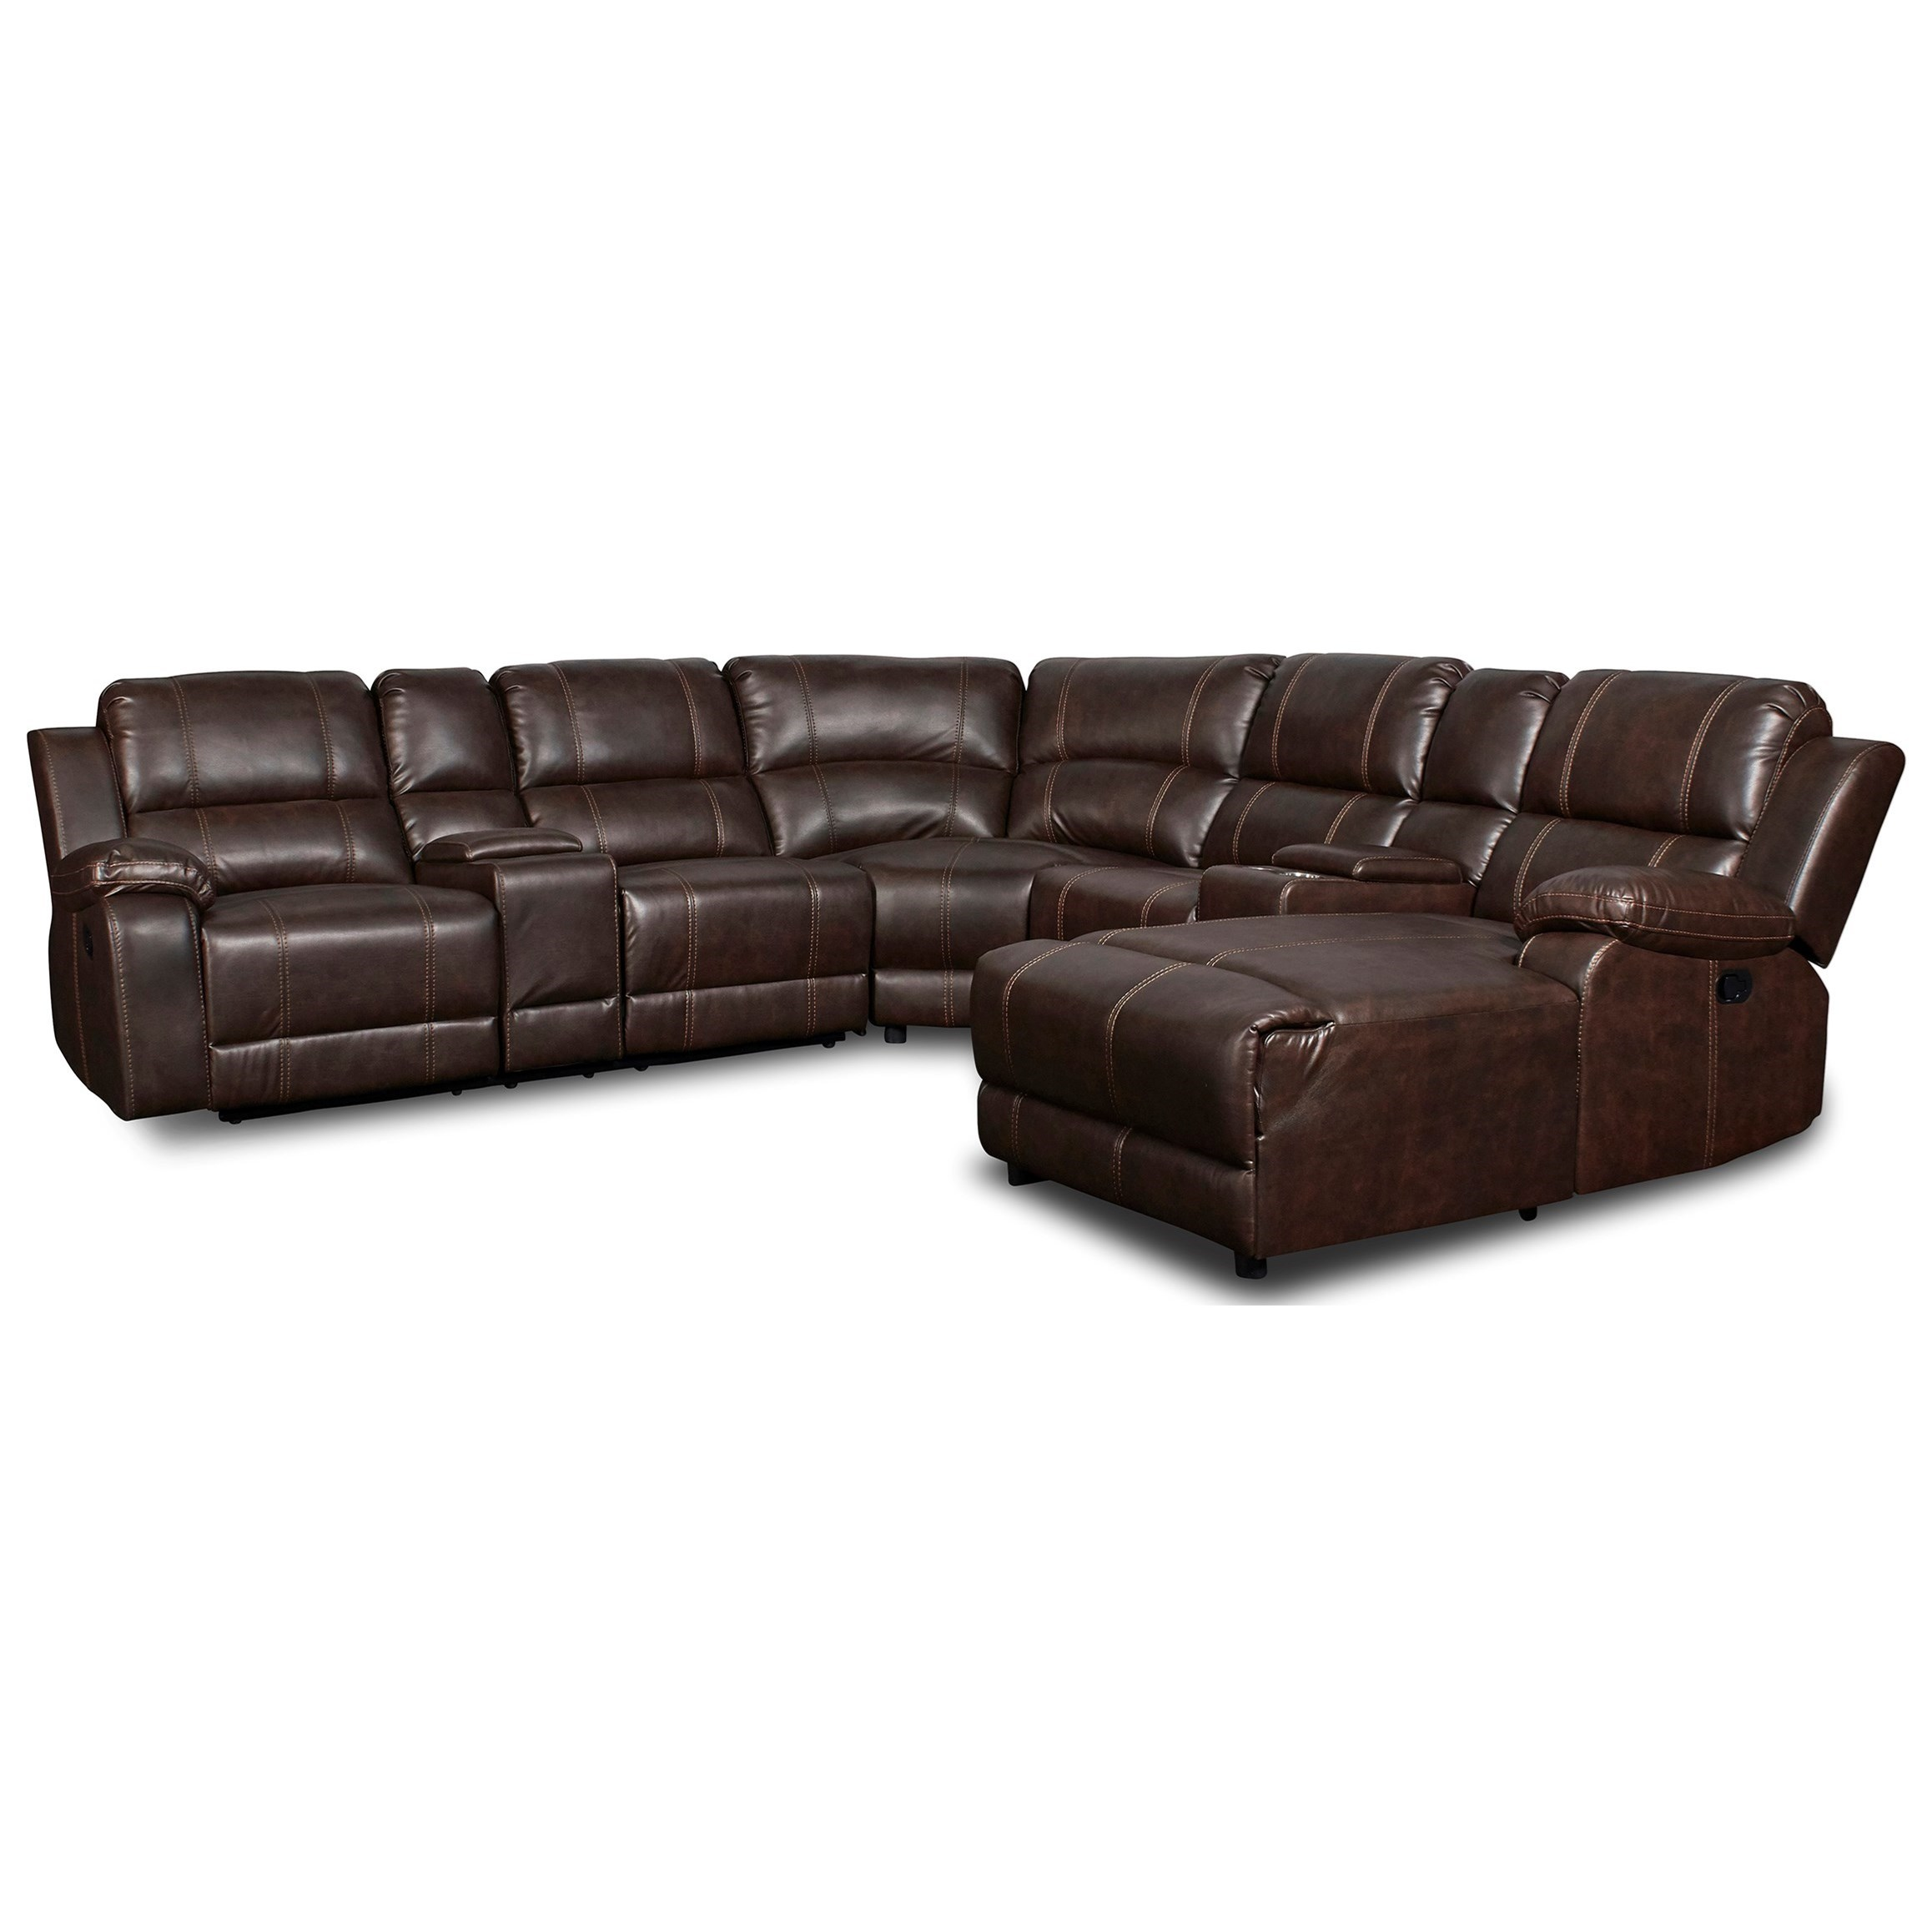 Rivers Reclining Sectional with Chaise by New Classic at Wilcox Furniture